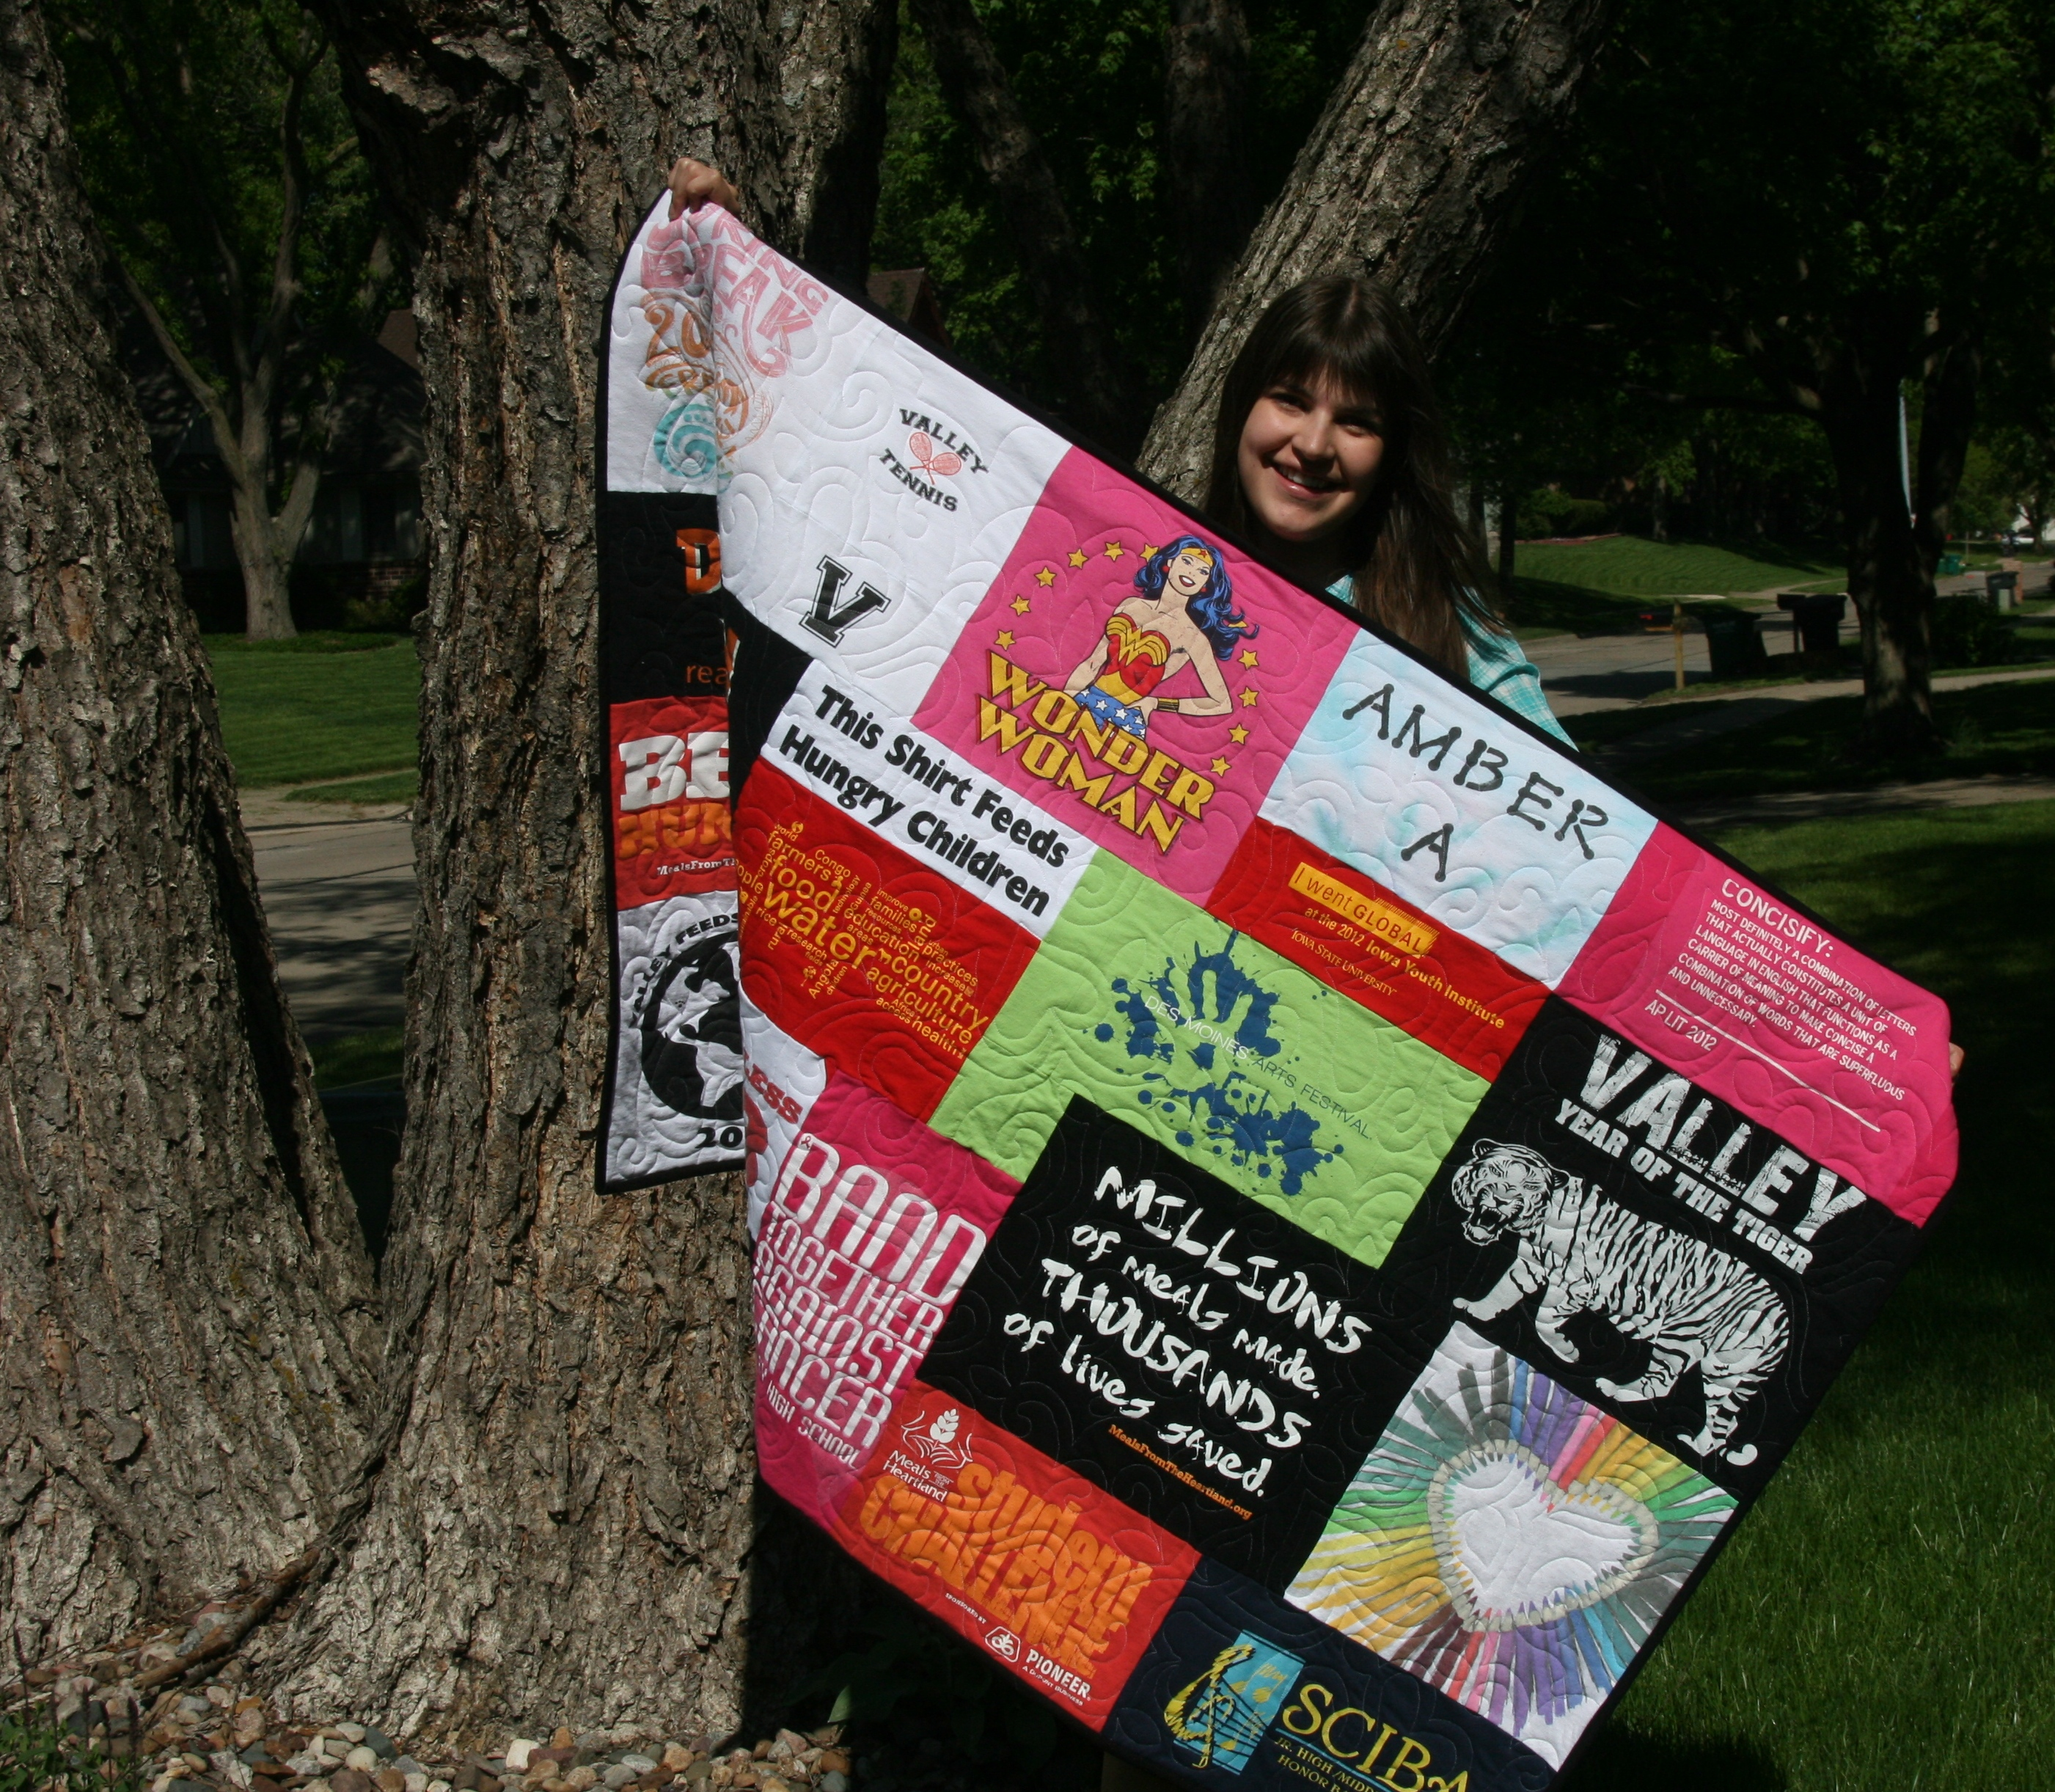 Honors student t-shirt quilt